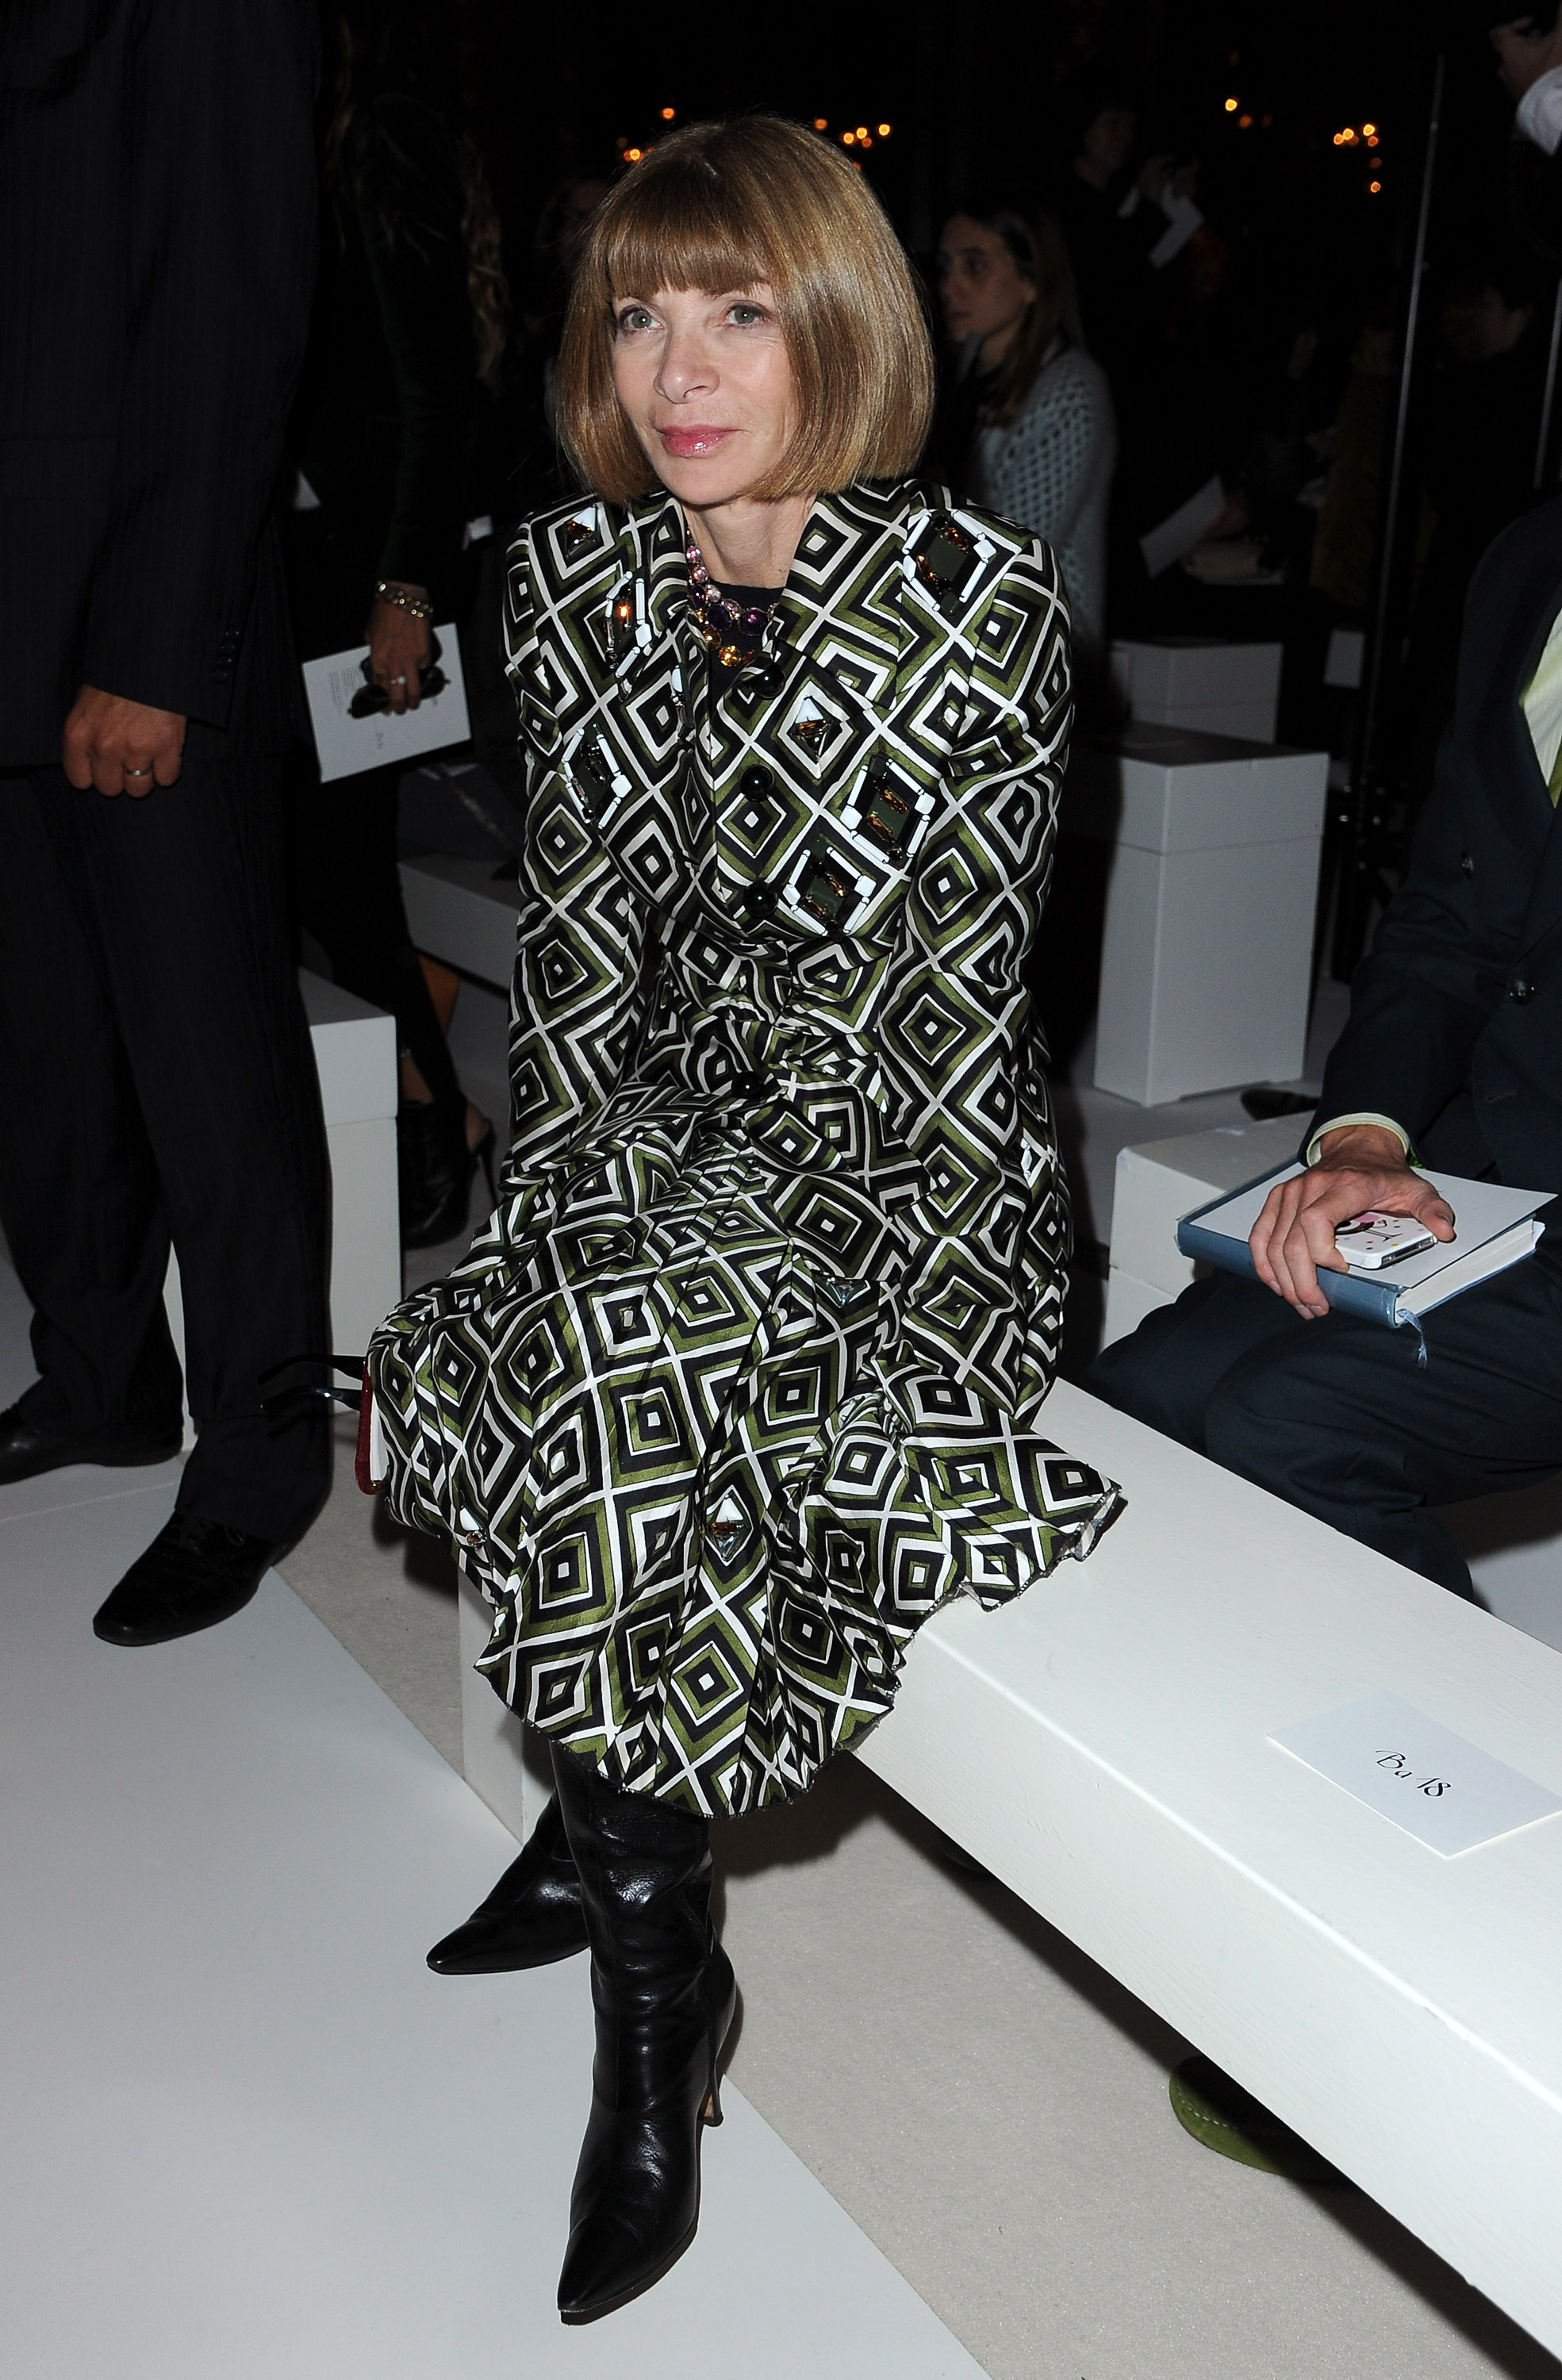 Anna Wintour is the latest chic style setter to step out in Prada's Fall '12 collection, as evidenced by her geometric-printed perfection at Balmain.